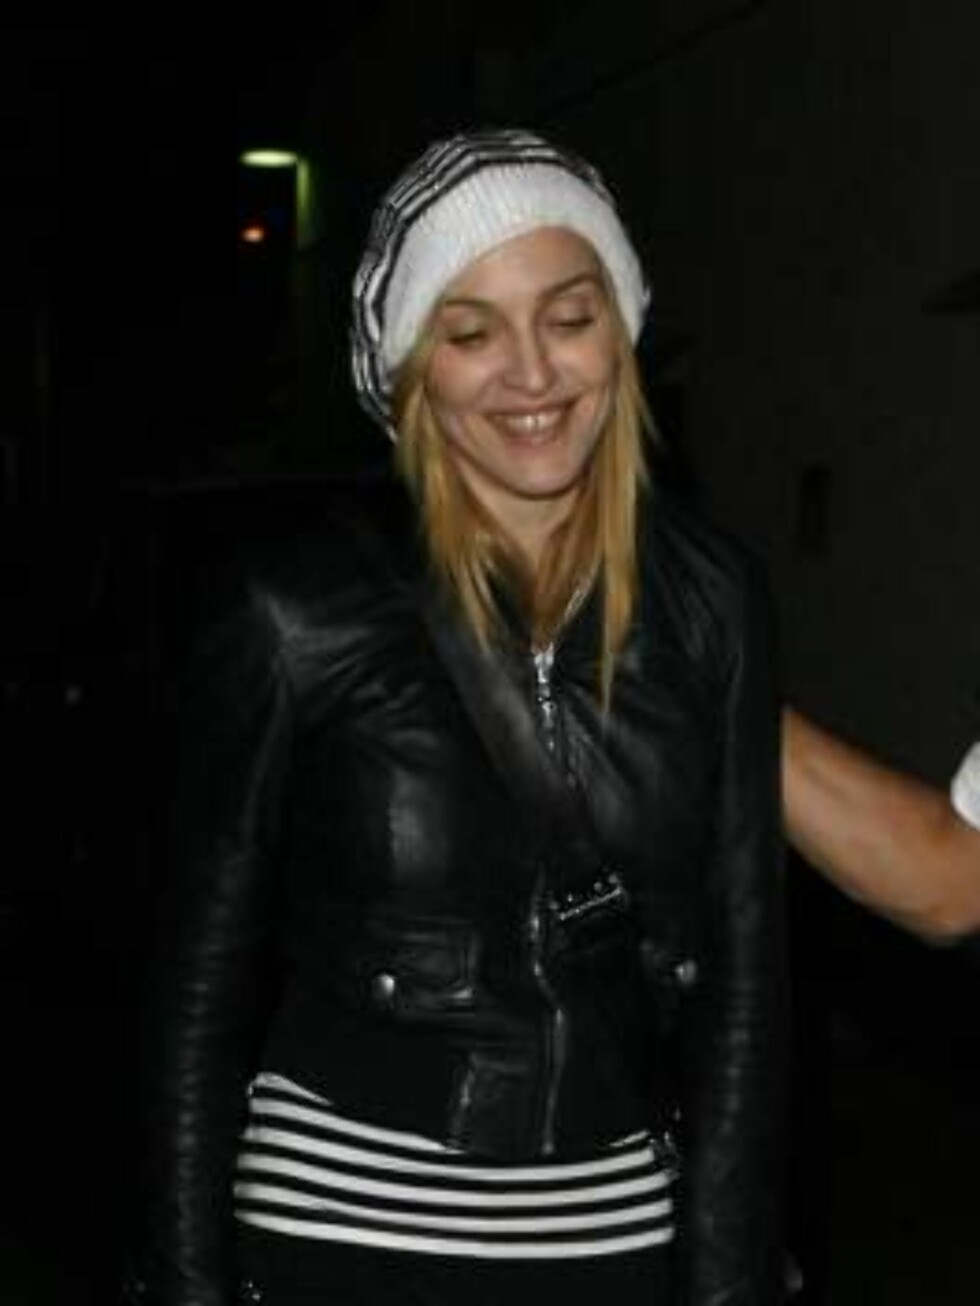 Madonna going to Kaballah without her ring and withour her husband Guy. Soon divorced? Mai 5, 2006 X17agency EXCLUSIVE / ALL OVER PRESS Foto: All Over Press